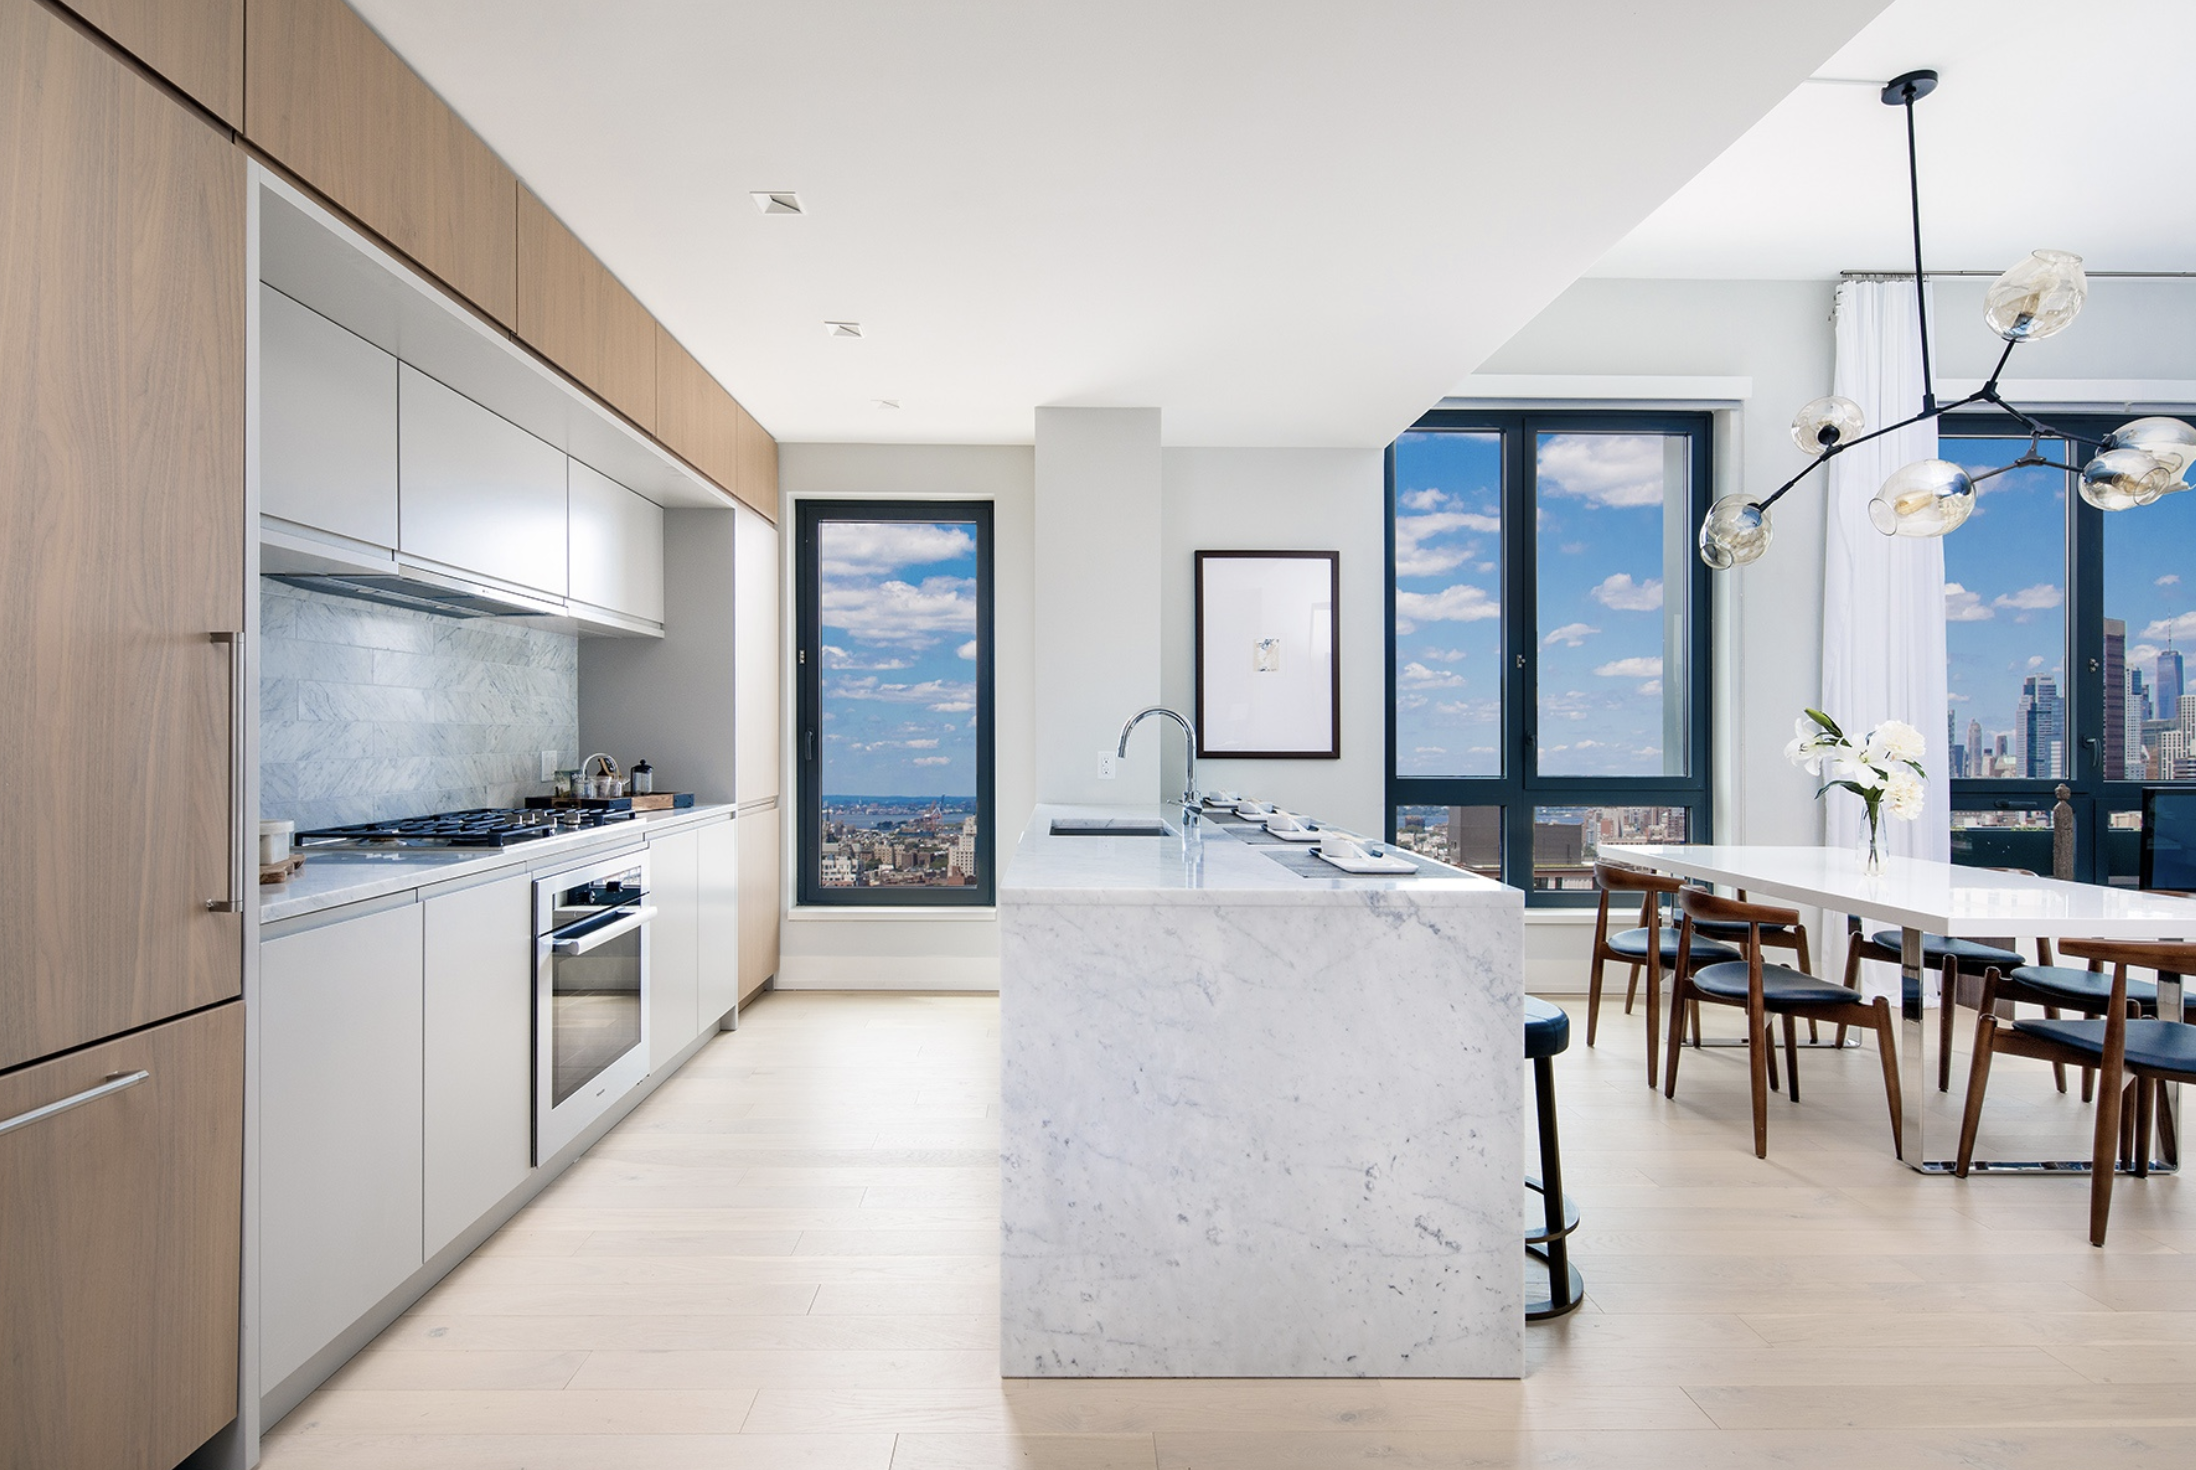 550 VANDERBILT AVENUE, 1609 - $2,300,000 // 2 Beds // 2.5 Baths // 1,429 SQFTThe first residential building to open in Pacific Park Brooklyn, the revolutionary new Frank Gehry designed 22-acre project coming to Prospect Heights. This stunning residence with lofty ceilings heights of up to 10 feet has been designed using a palette of natural, organic elements with an array of sophisticated fixtures and finishes.